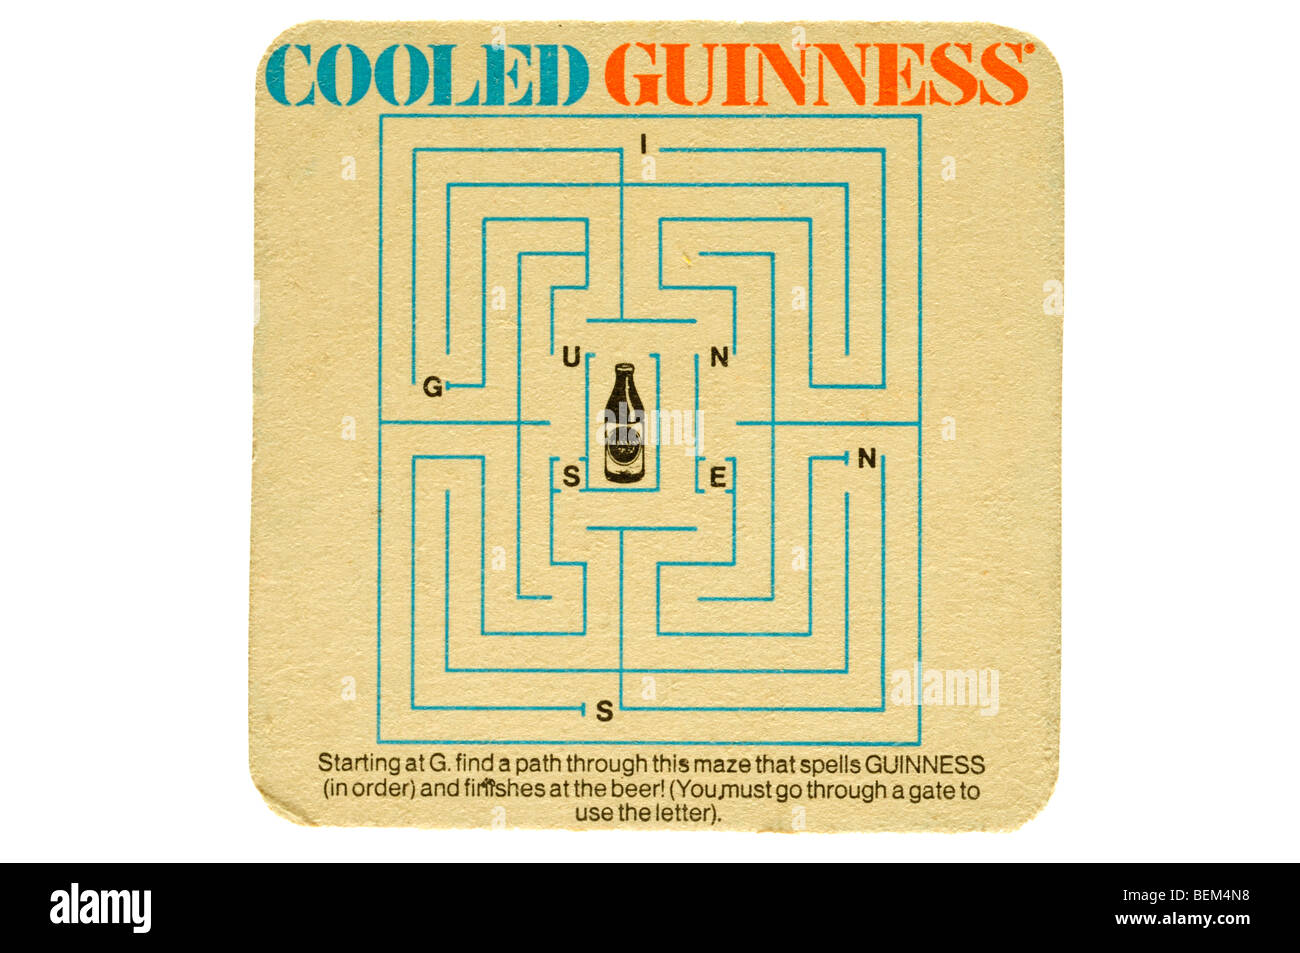 cooled guiness - Stock Image